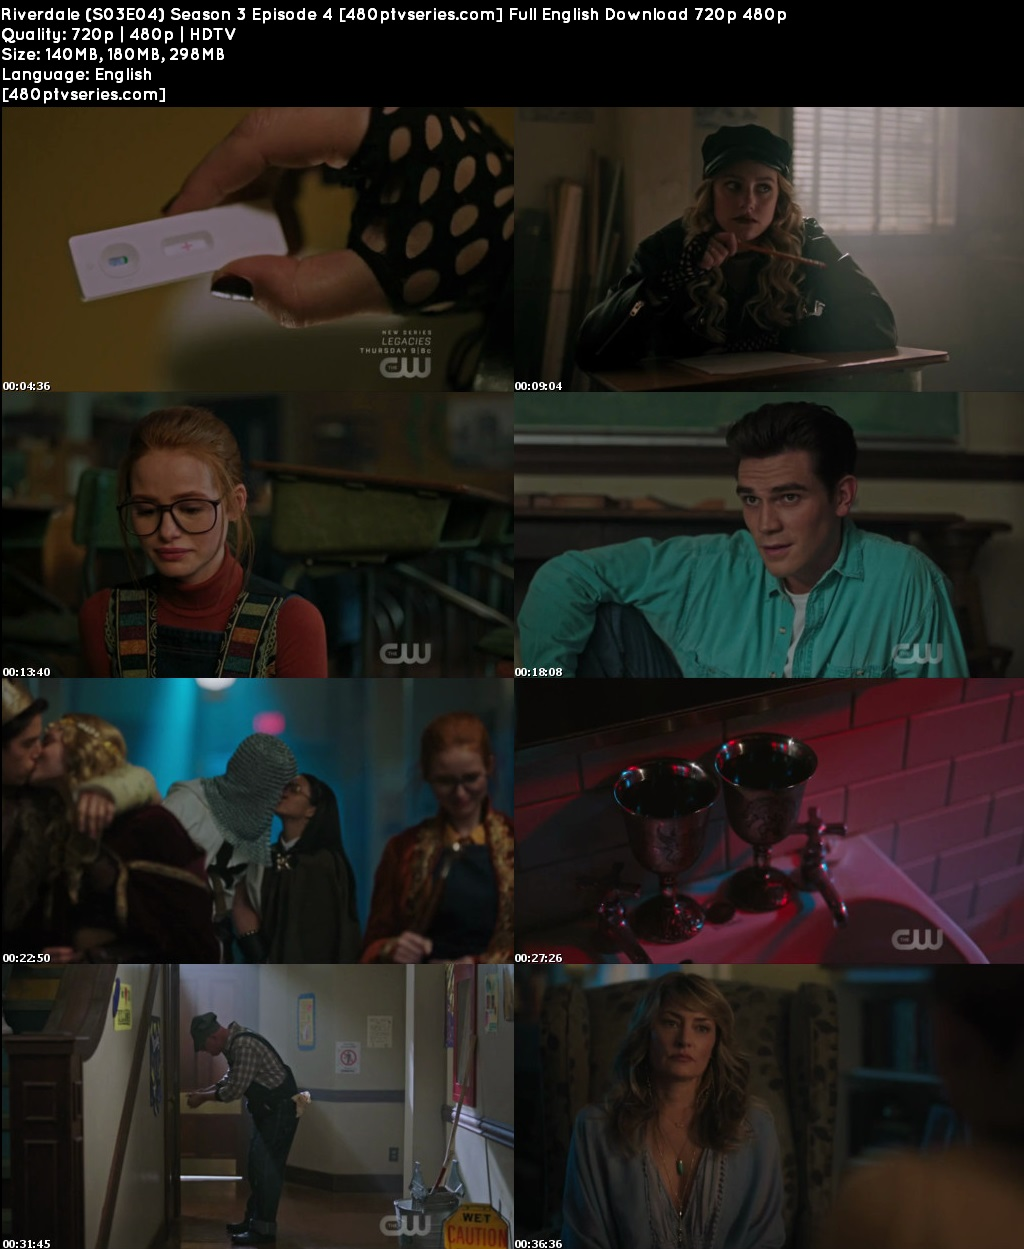 Riverdale (S03E04) Season 3 Episode 4 Full English Download 720p 480p